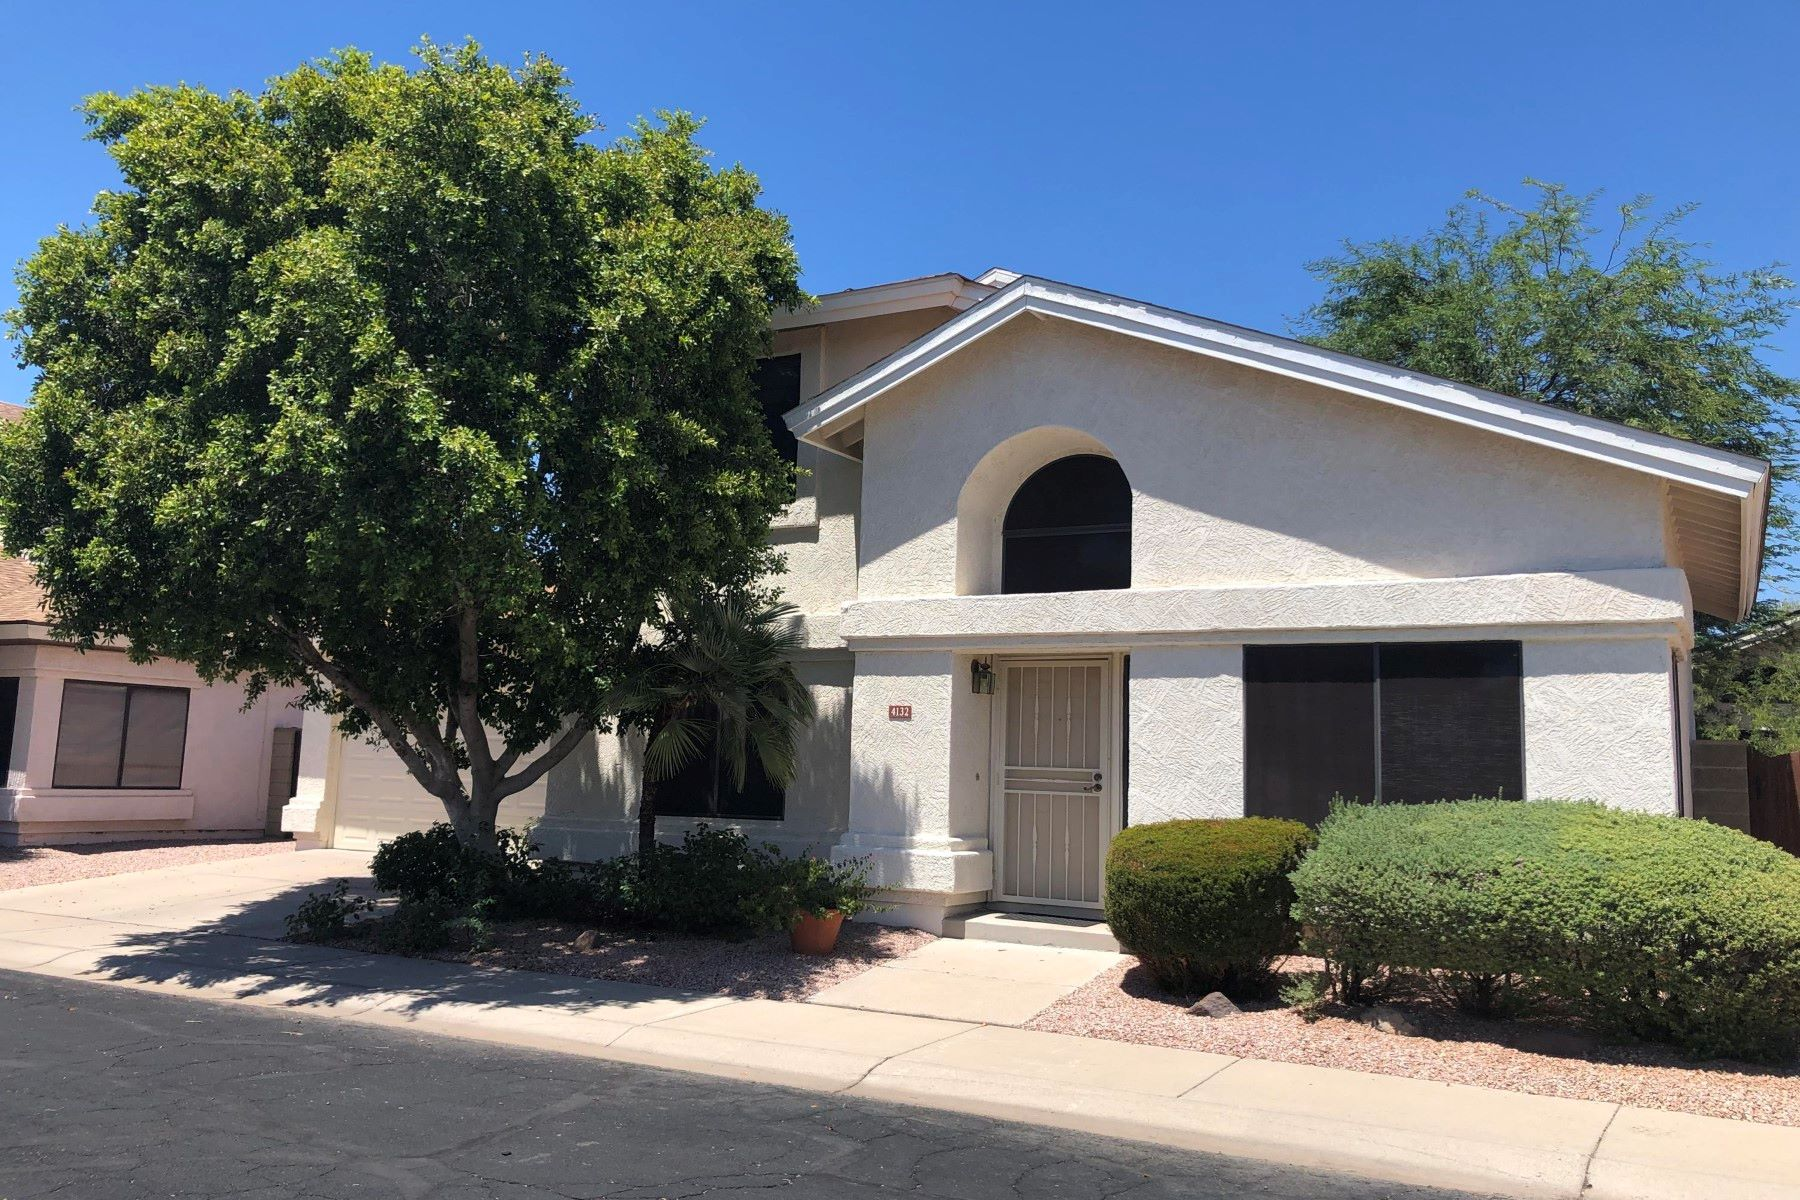 Single Family Homes for Active at Great Single Family Home 4132 W KIMBERLY WAY Glendale, Arizona 85308 United States